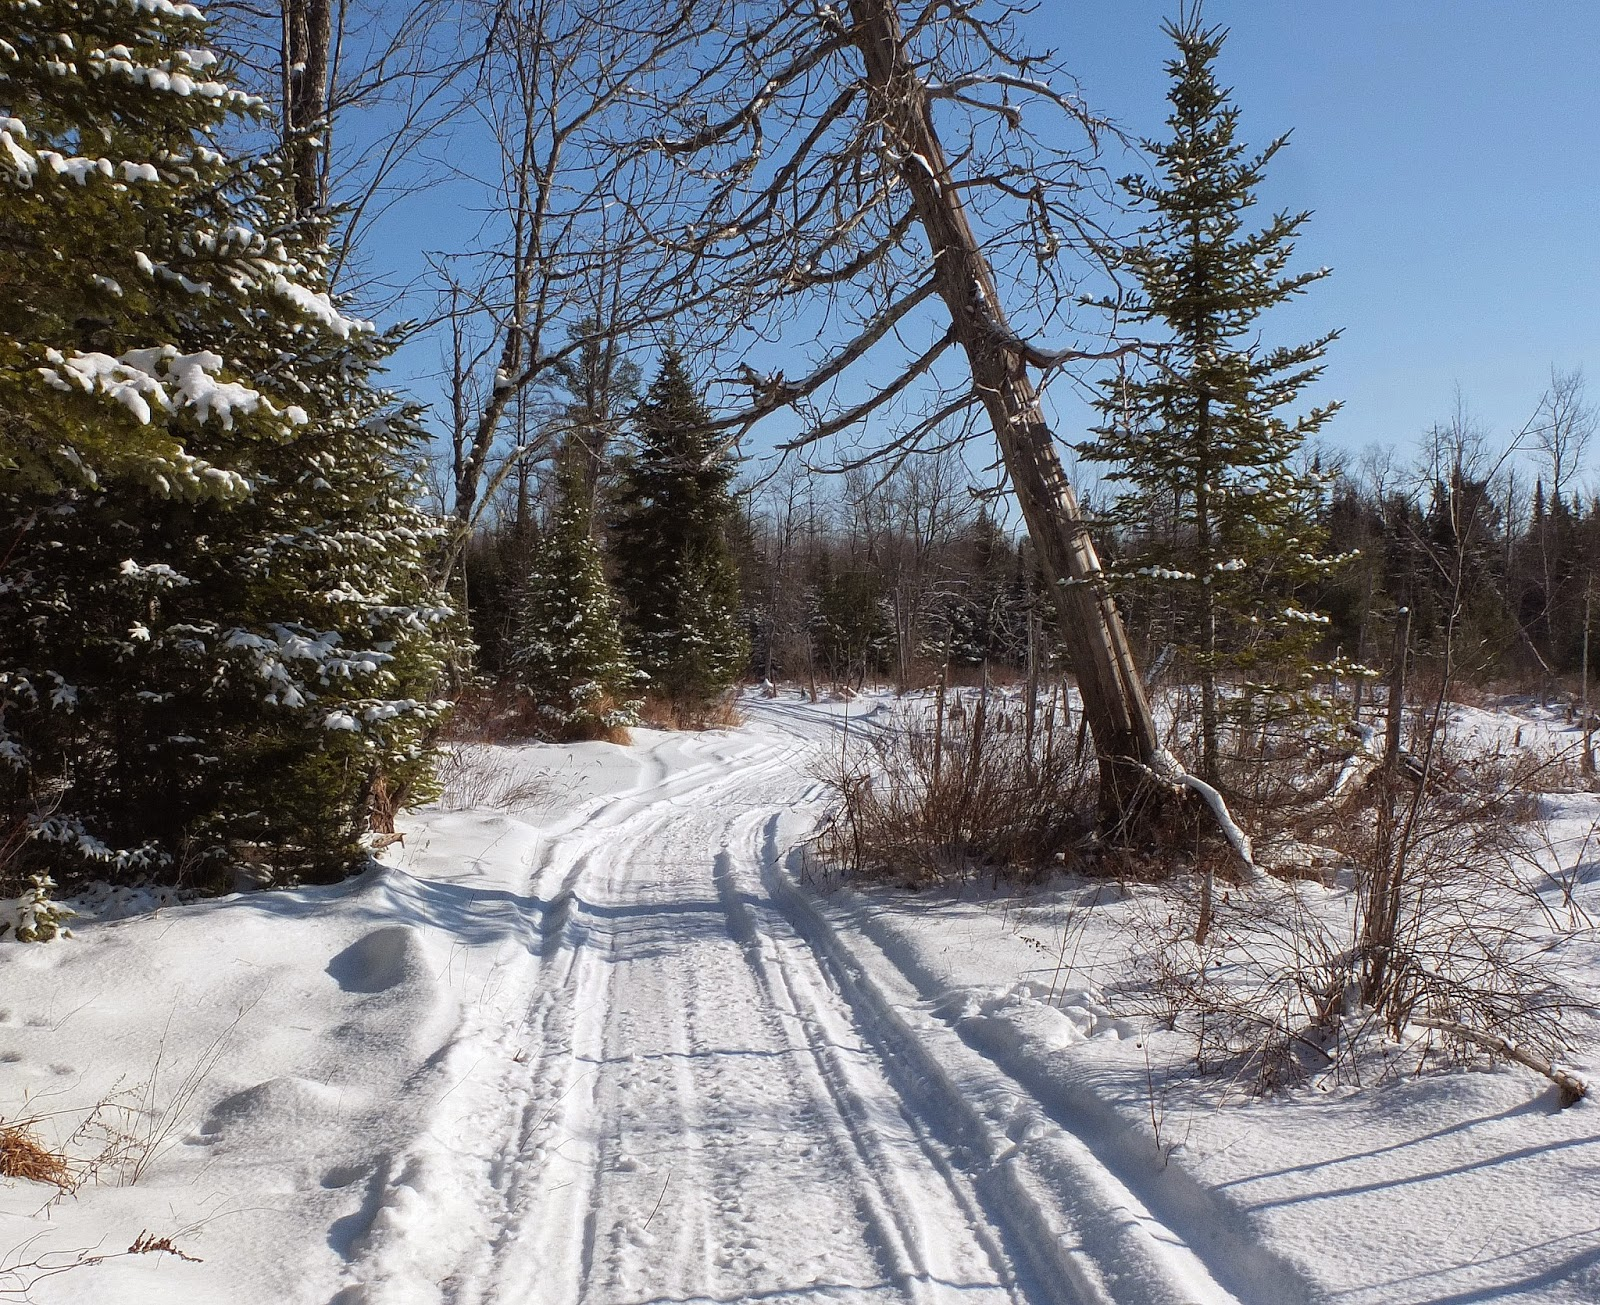 Hiking in Maine with Kelley: 1/16/15 Glenburn Snowmobile Trail